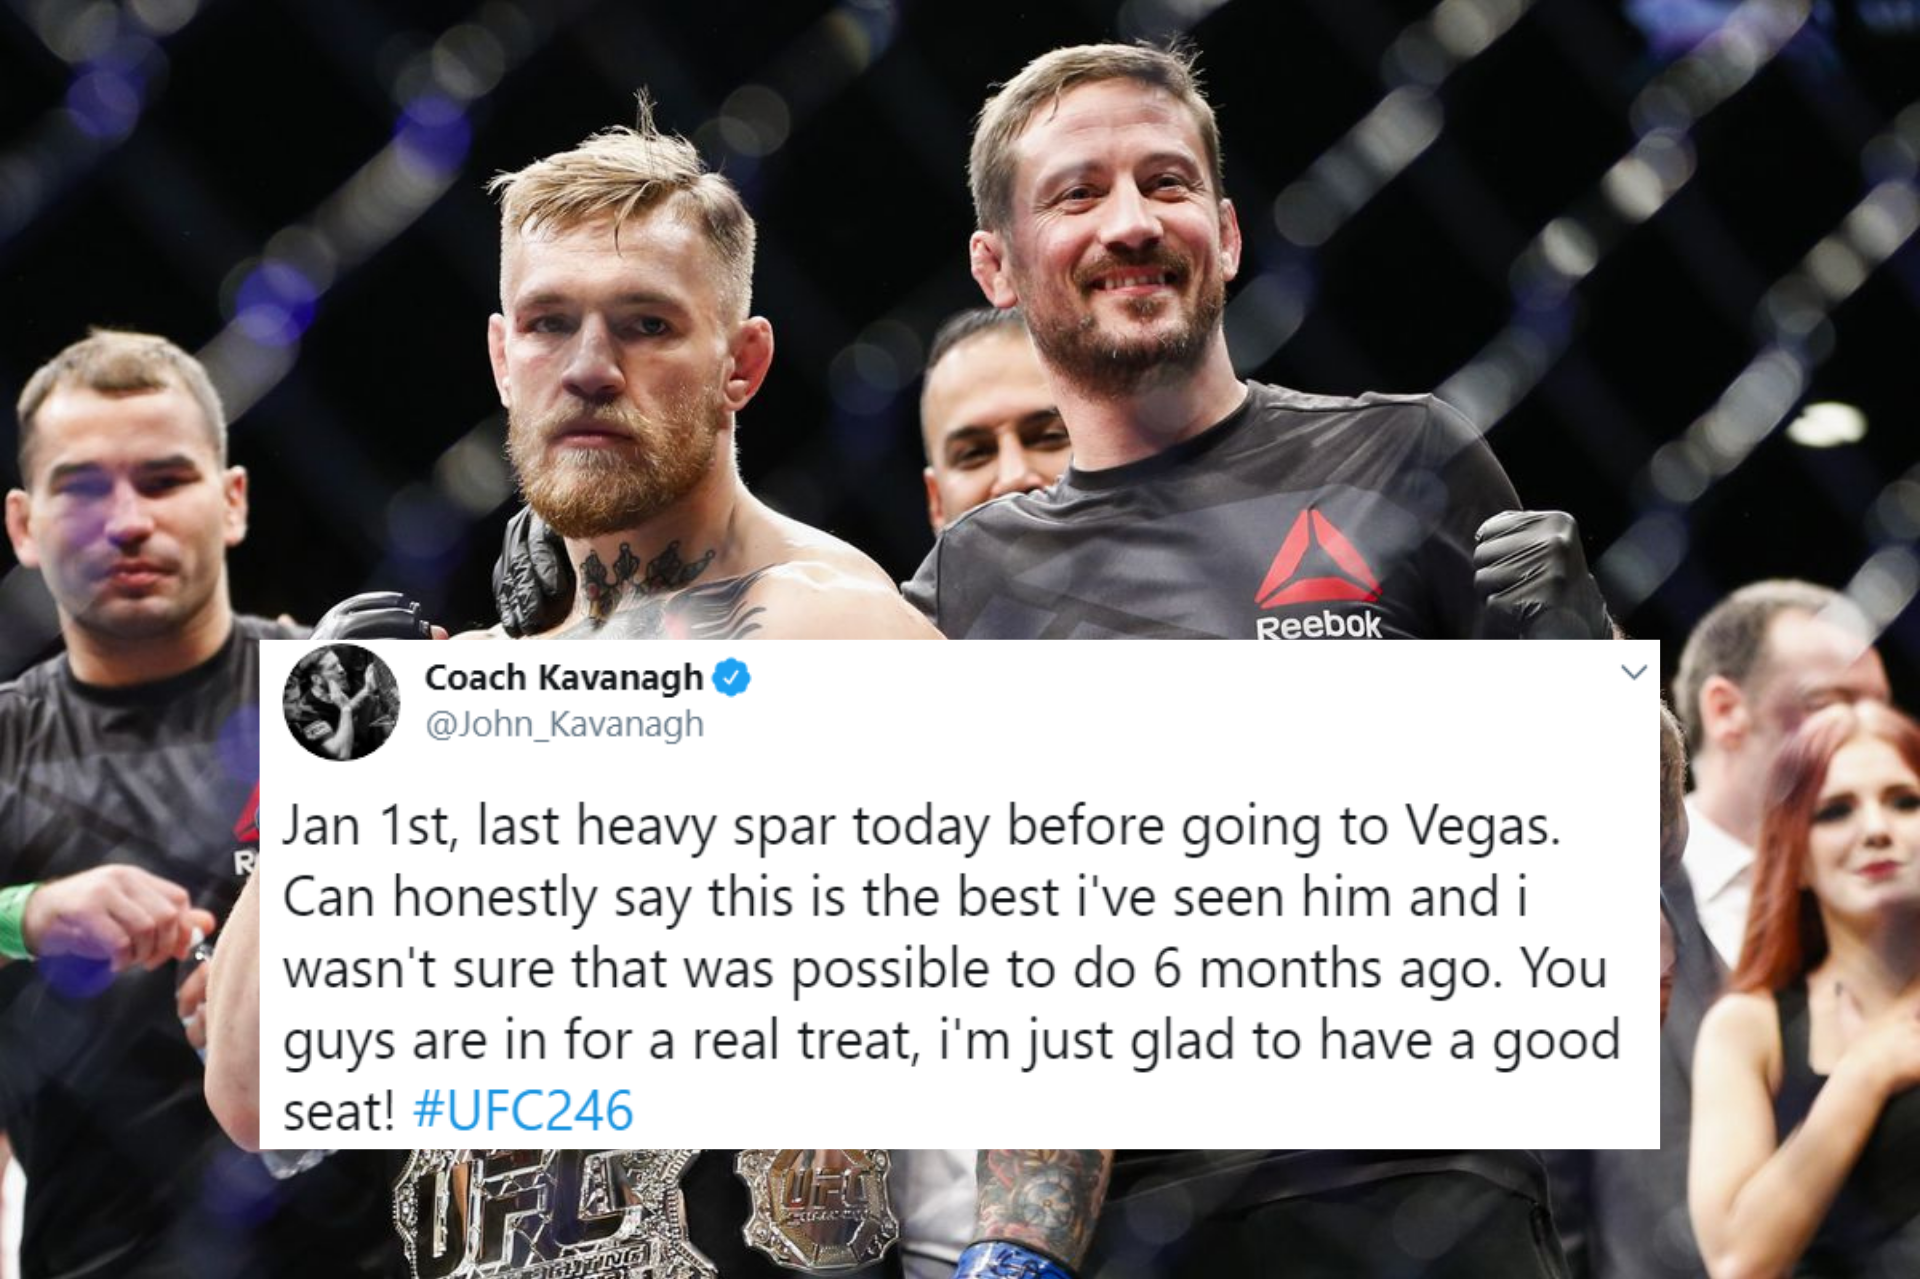 John Kavanagh promises a 'treat' for fans when Conor McGregor returns: 'This is the best I've seen him' - Conor